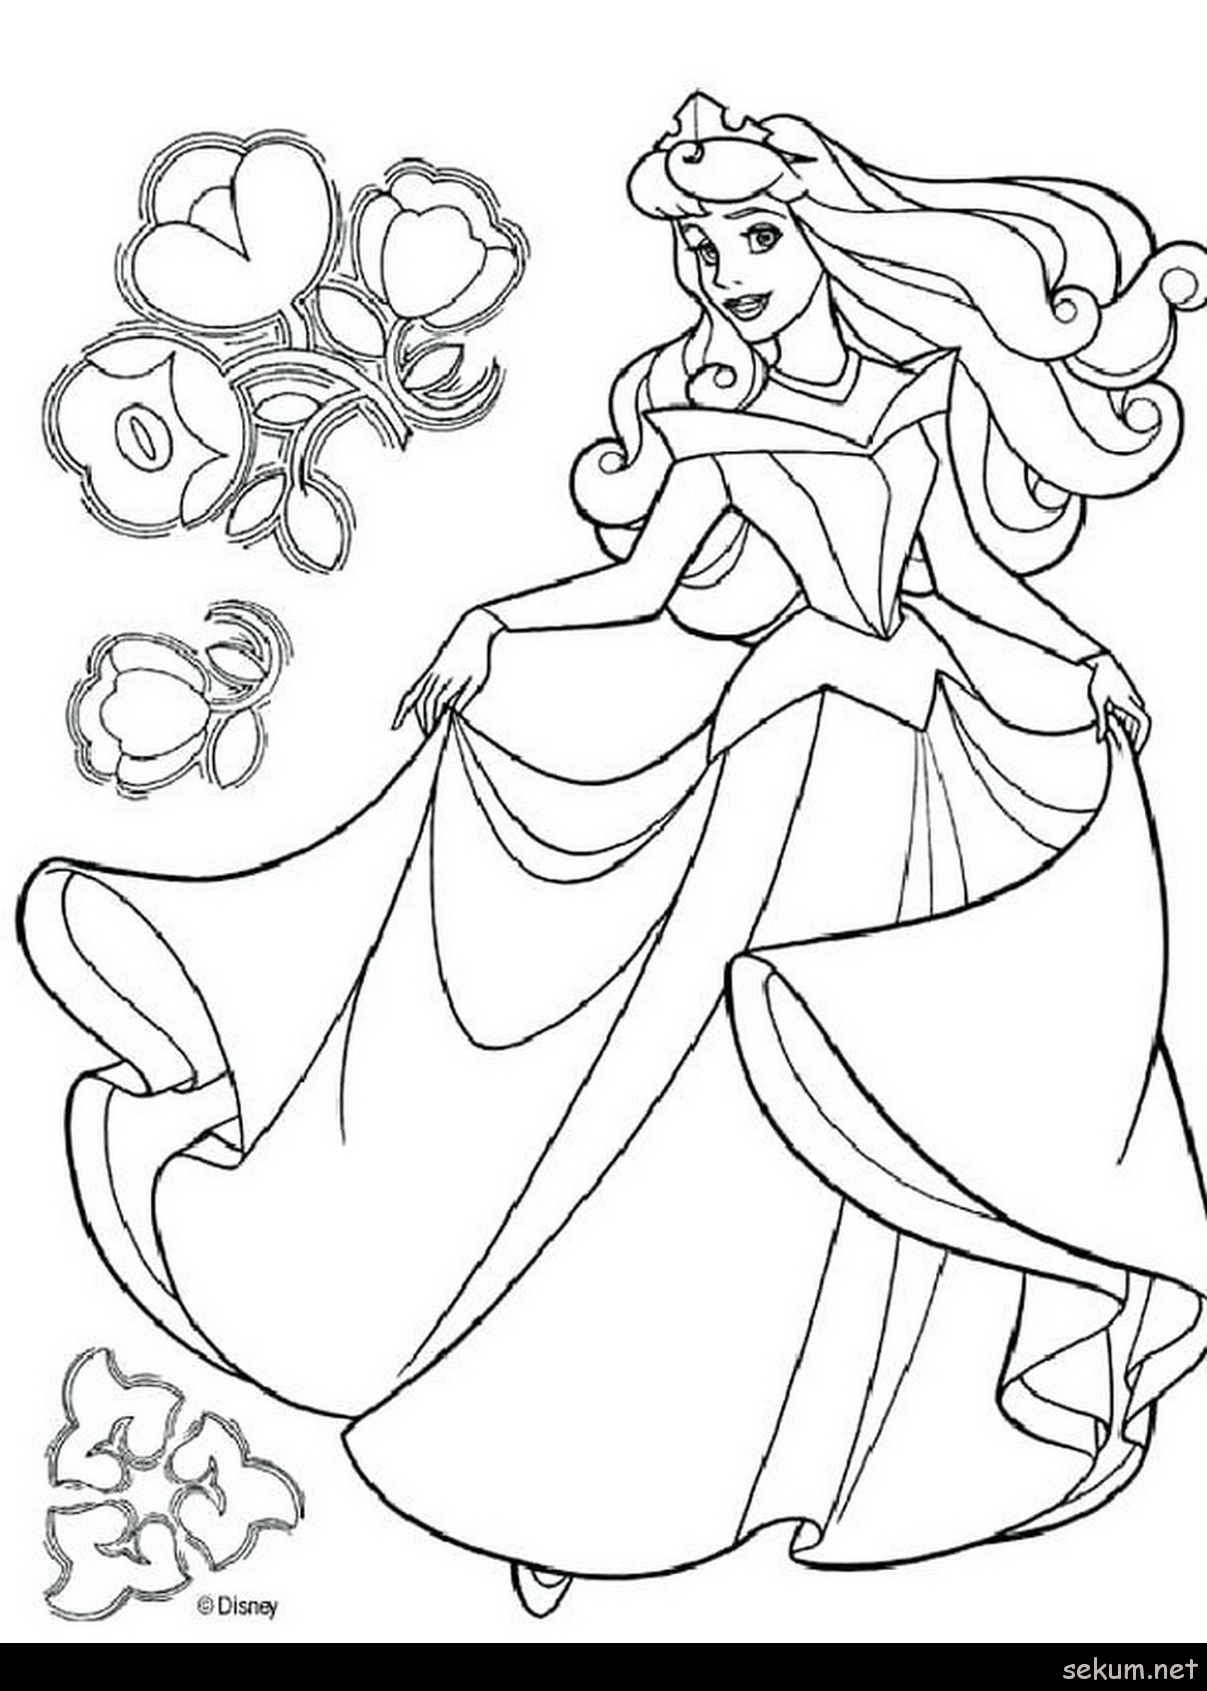 Princess Aurora Coloring Pages Free Coloring Books Princess Aurora Coloring Page Books Fabulous With